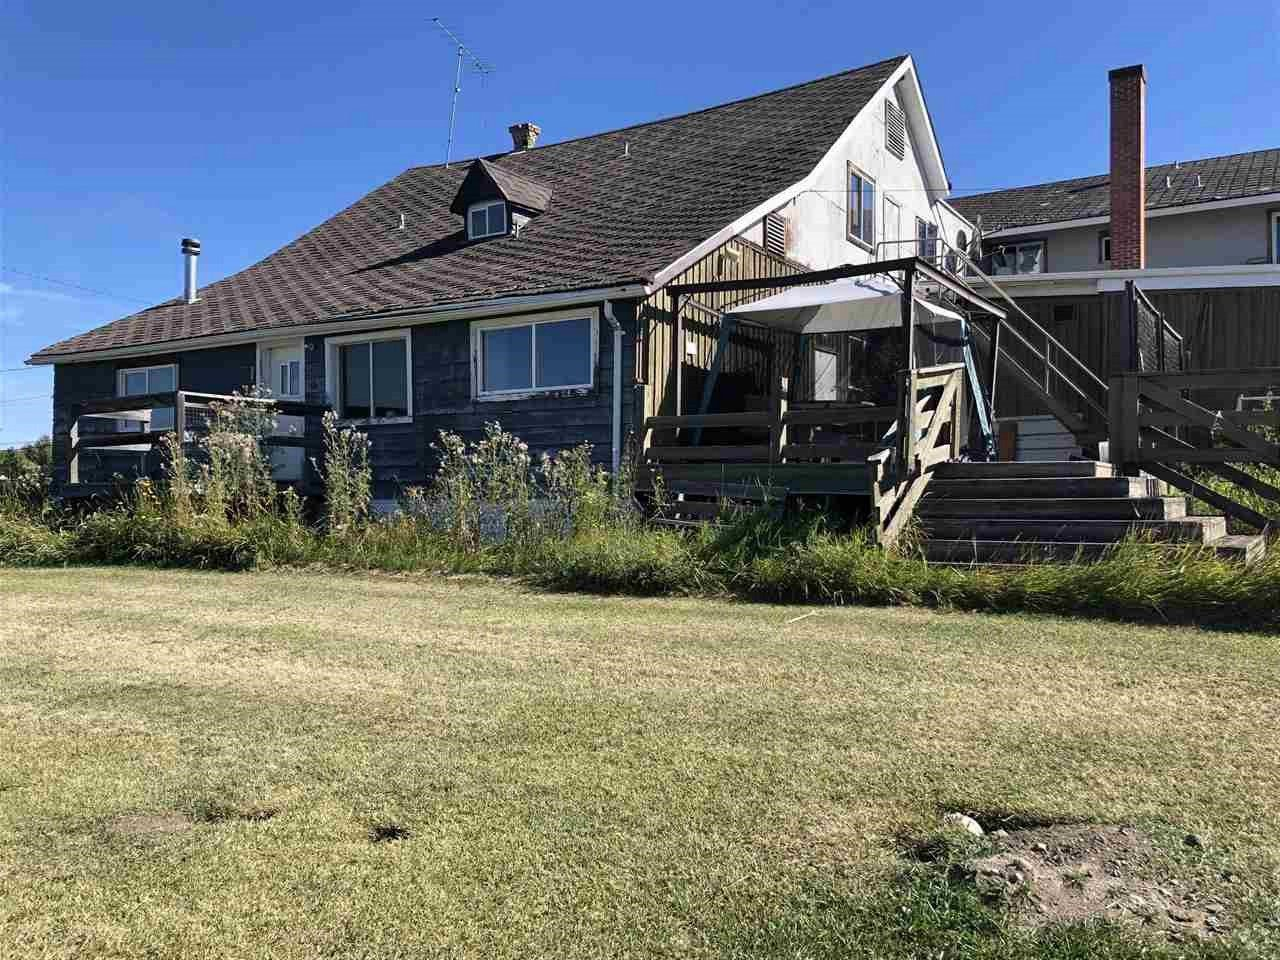 Photo 5: Photos: 3090 150 MILE FRONTAGE Road: 150 Mile House Land Commercial for sale (Williams Lake (Zone 27))  : MLS®# C8034187